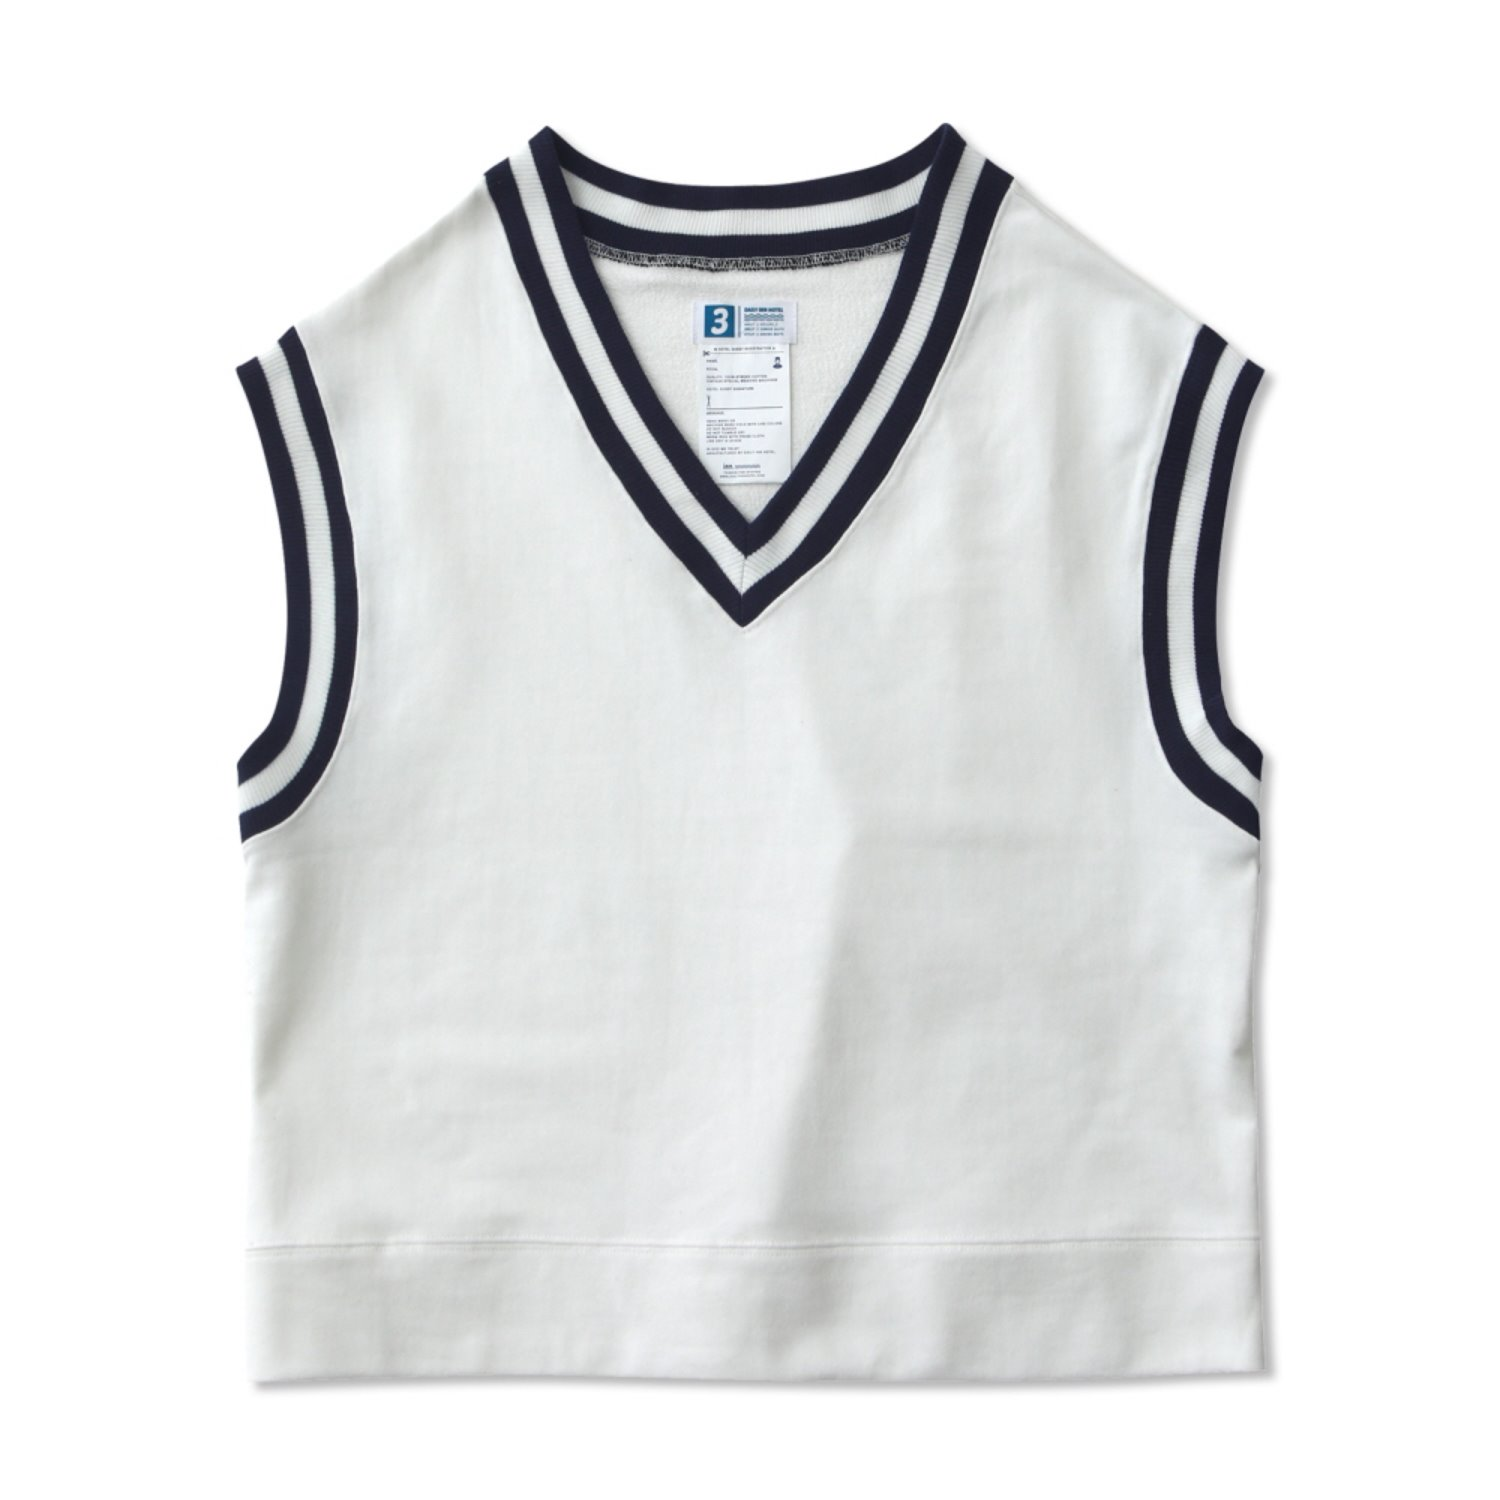 Lobby Boy Oversized Uniform Cotton Vest (White)